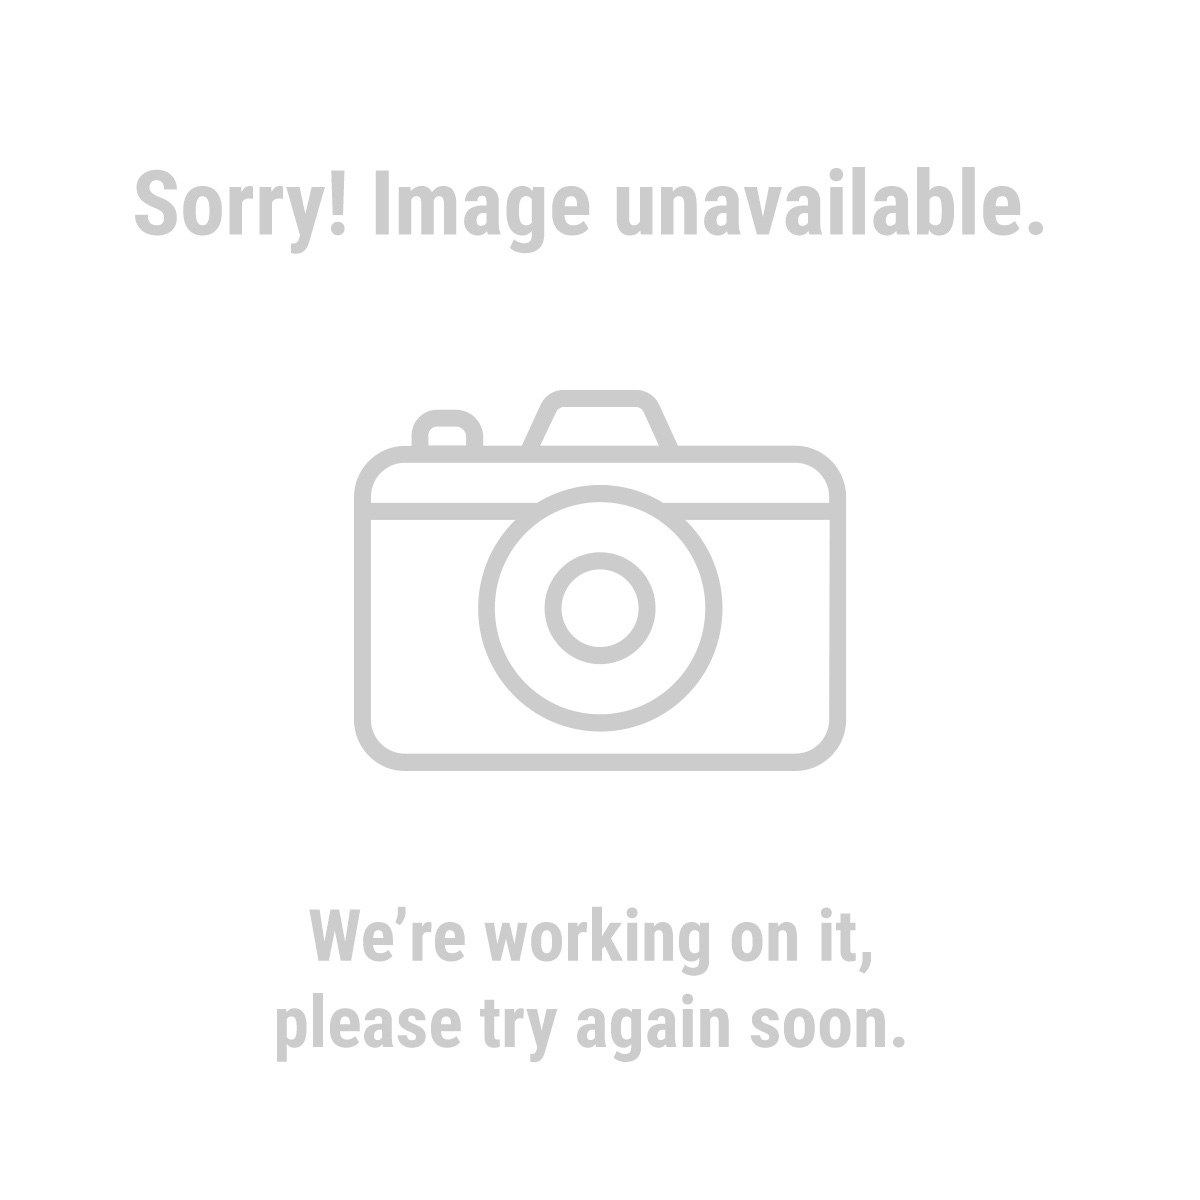 hight resolution of bunker hill security camera wireless color security diagram wiring bunker hill security camera wireless color security diagram